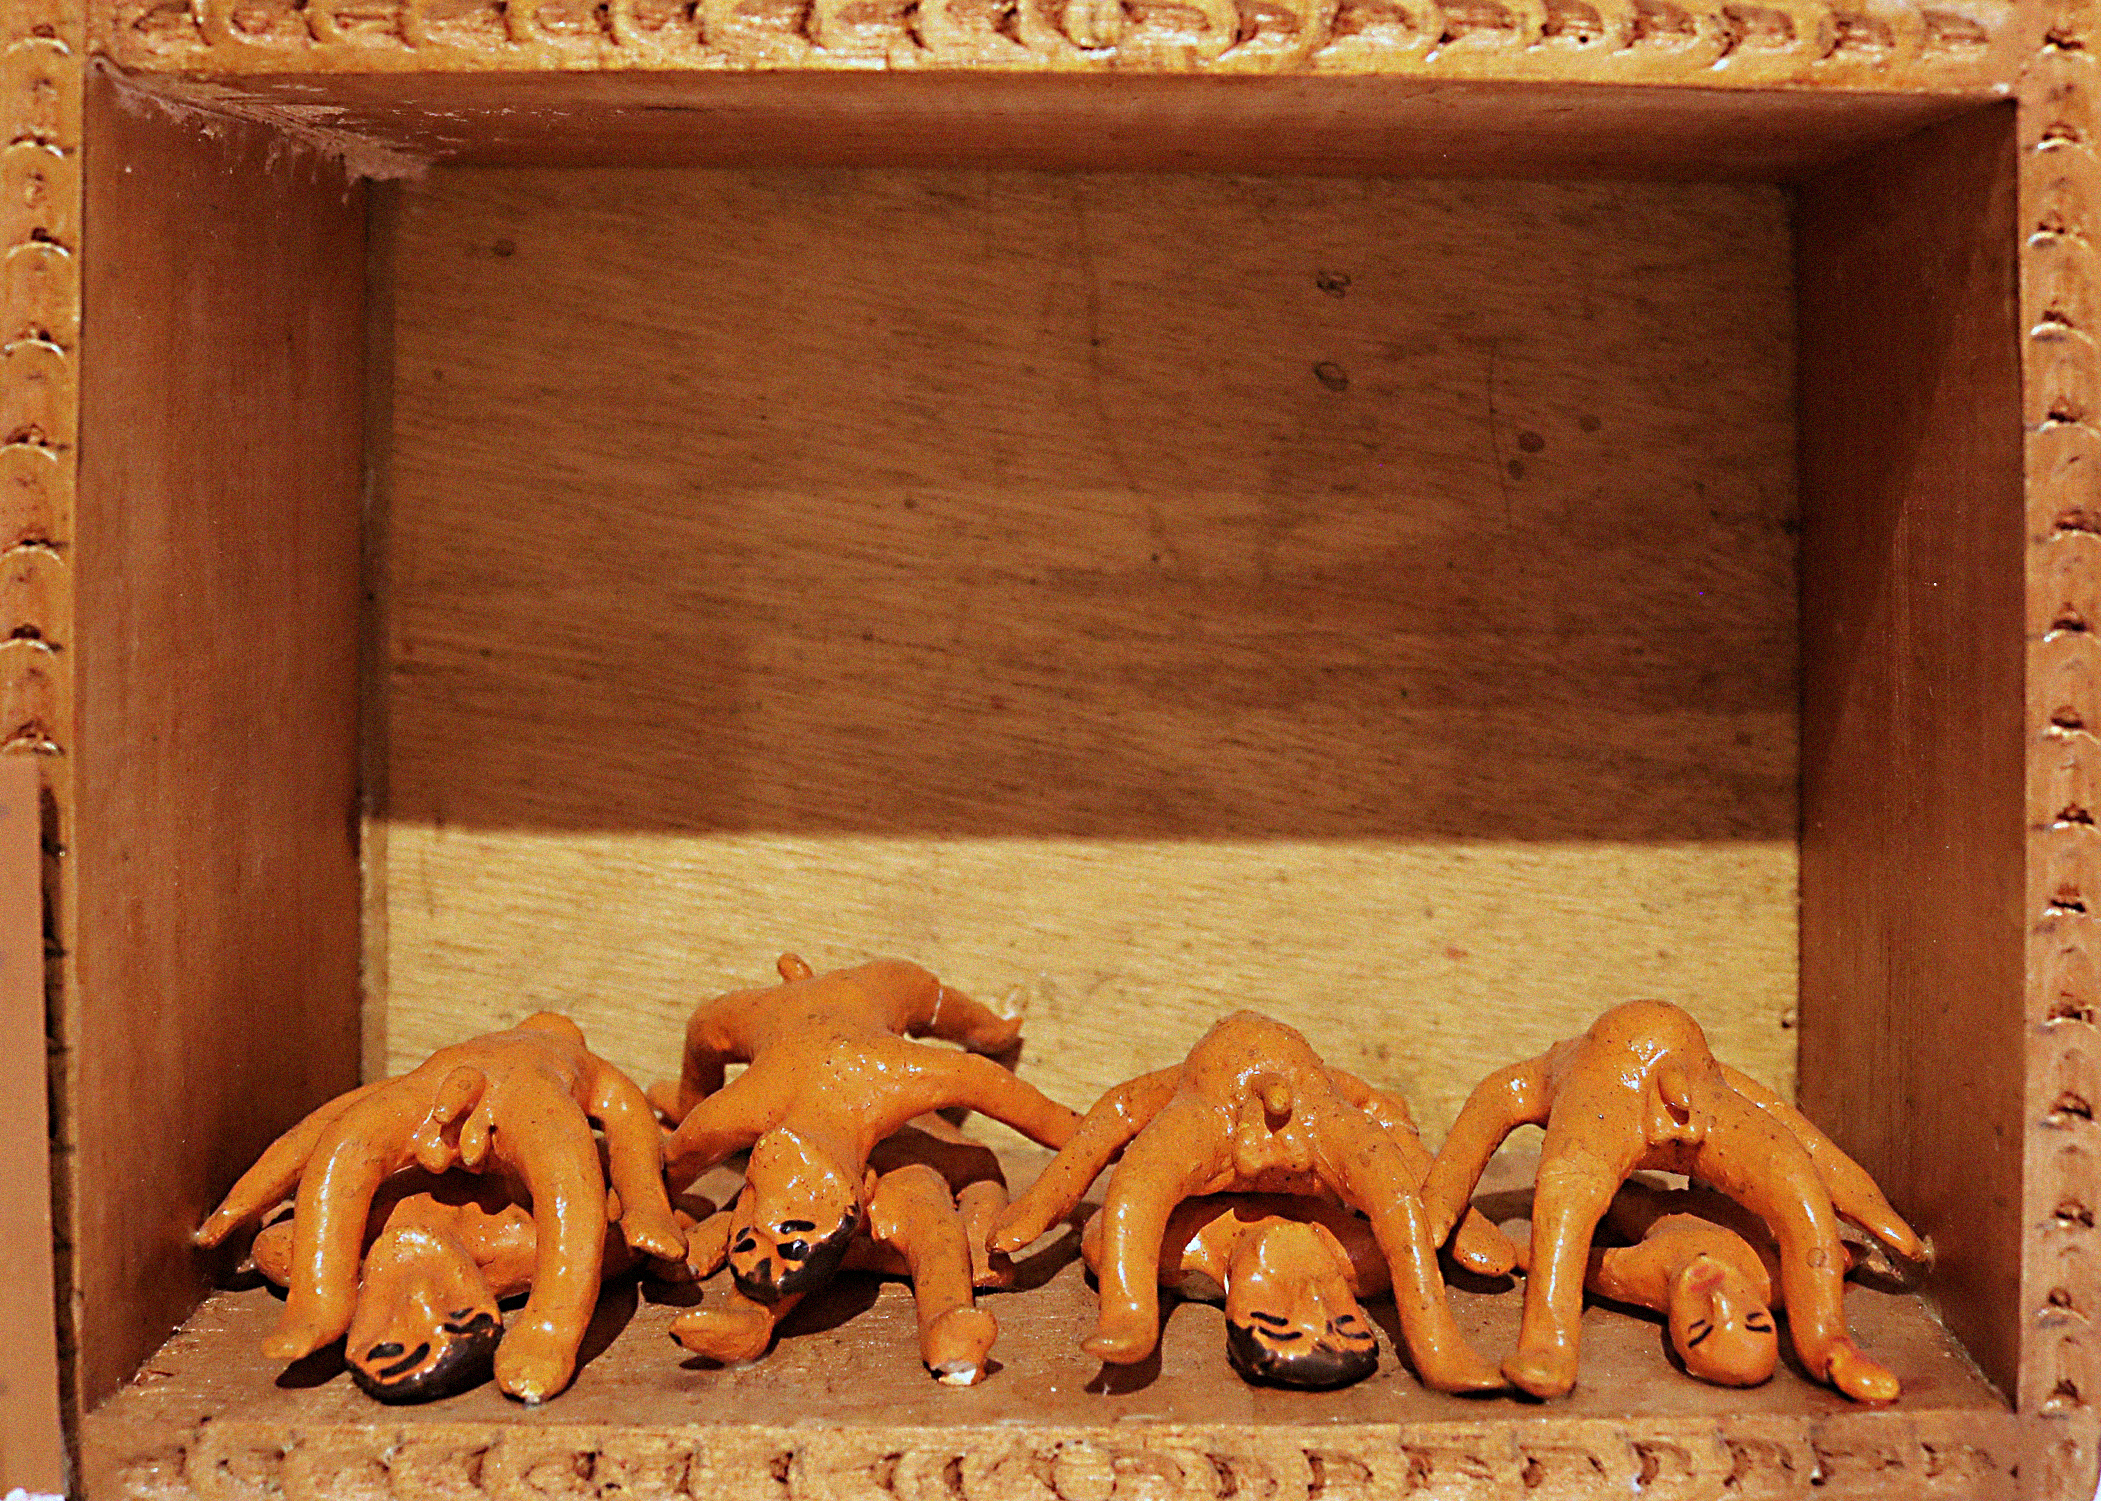 A scene called The Burial within a retablo. Four humanlike figurines lay on the base with four addition naked, humanlike figurines standing in a crab-walk position above them.